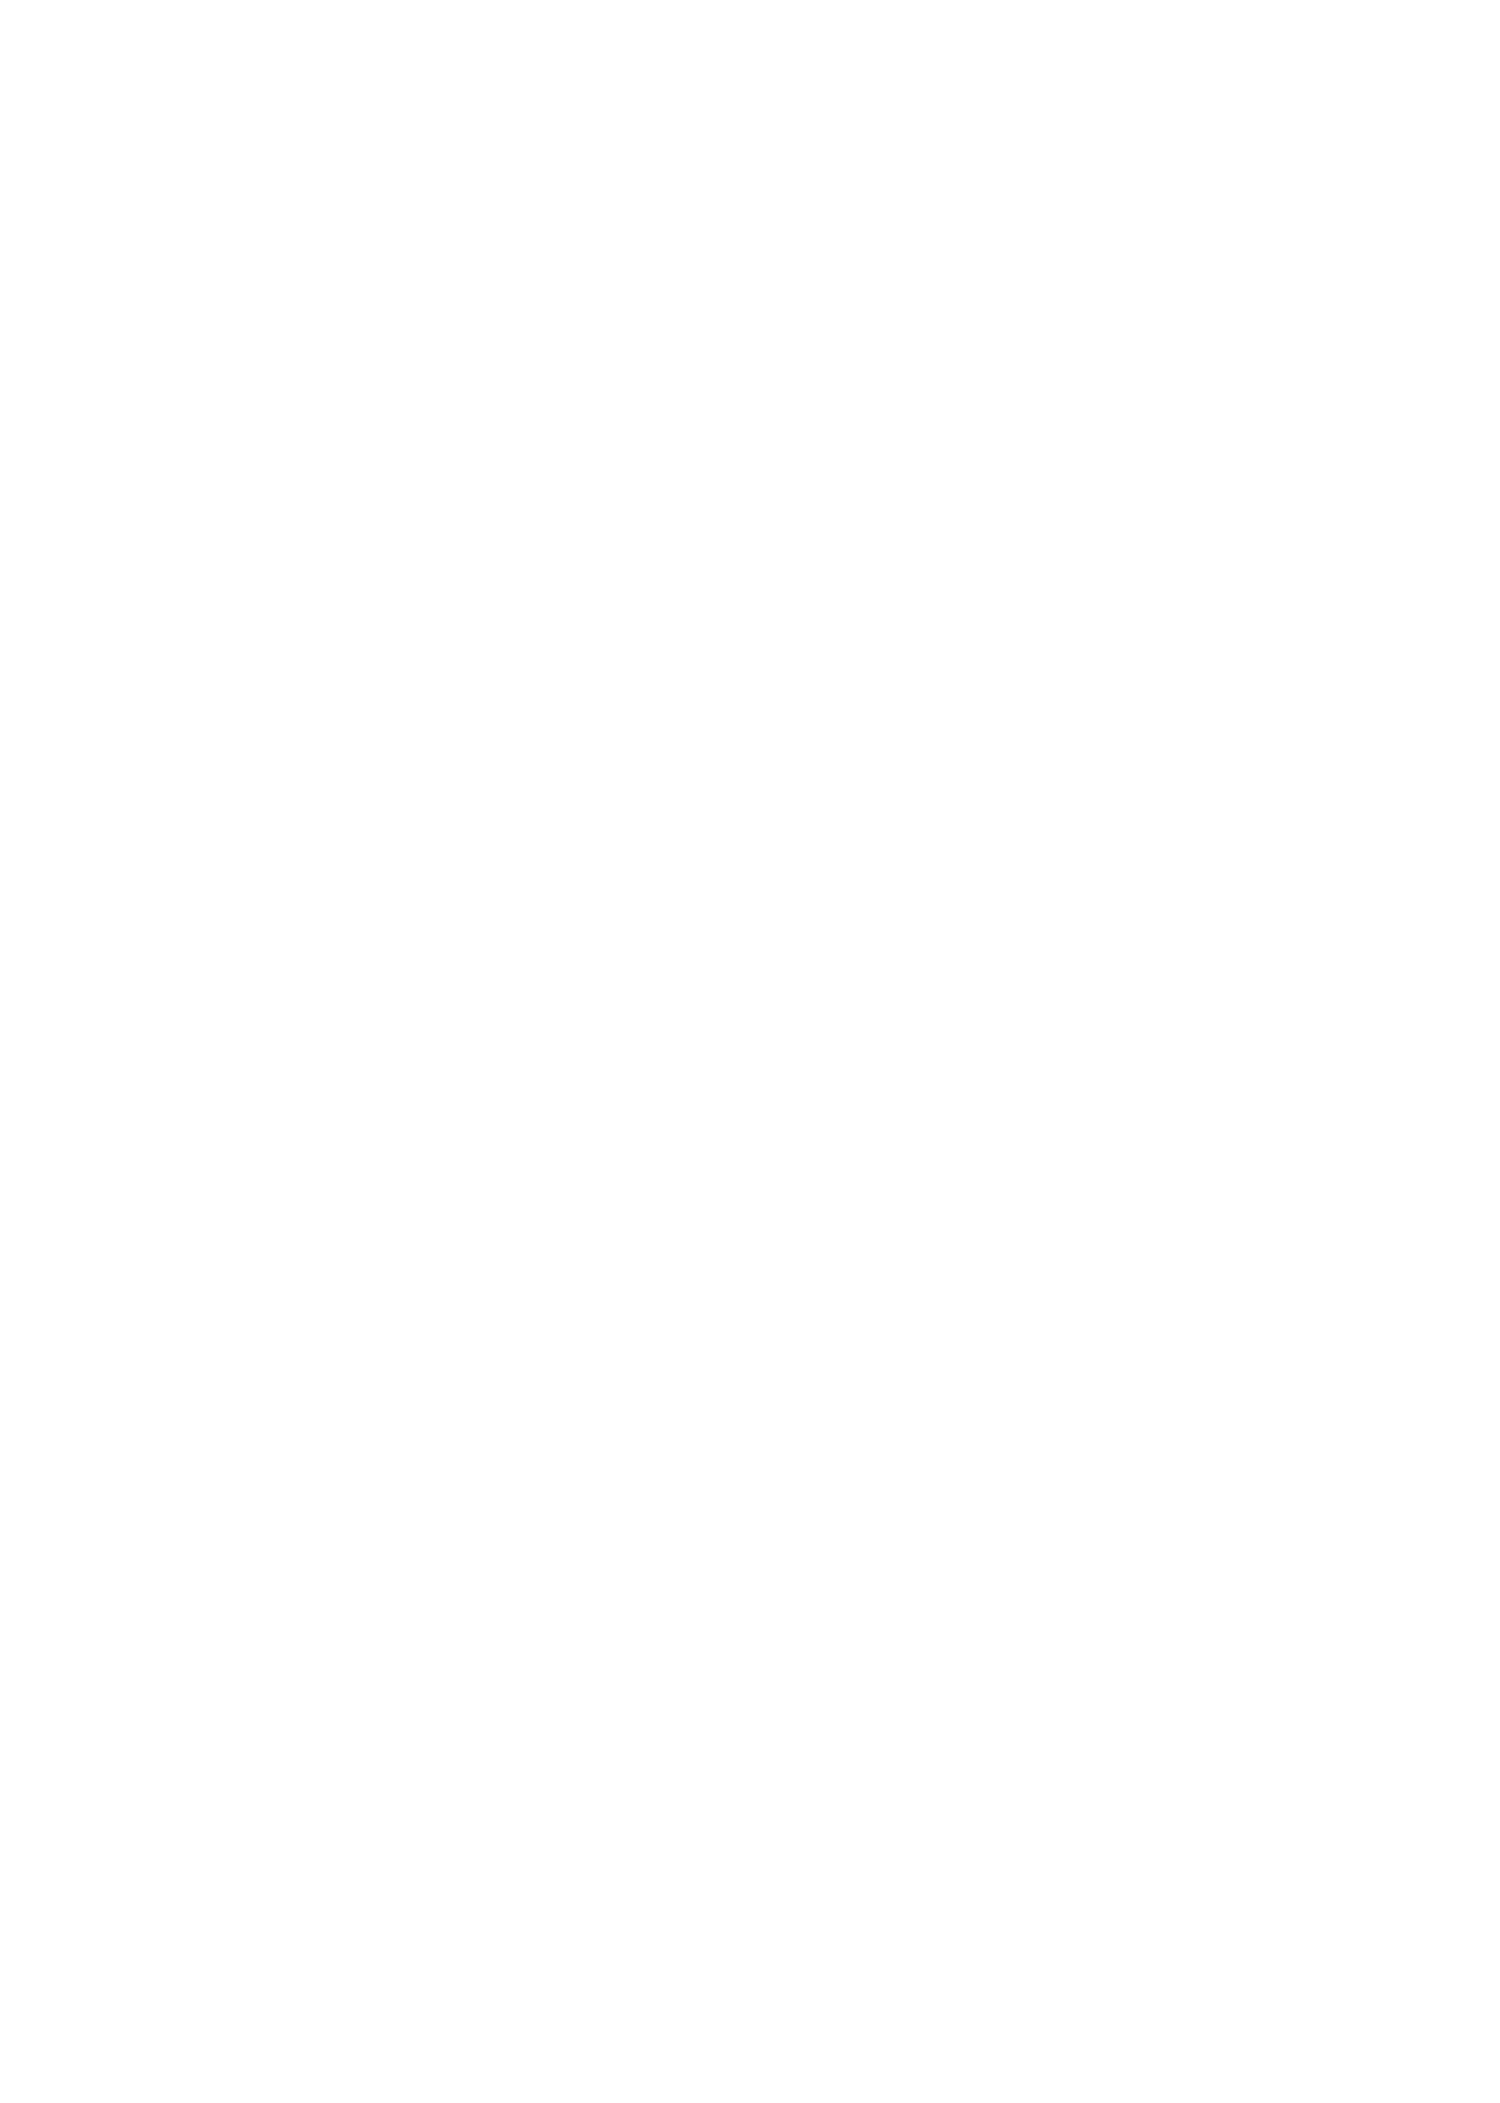 The Funky Brunch